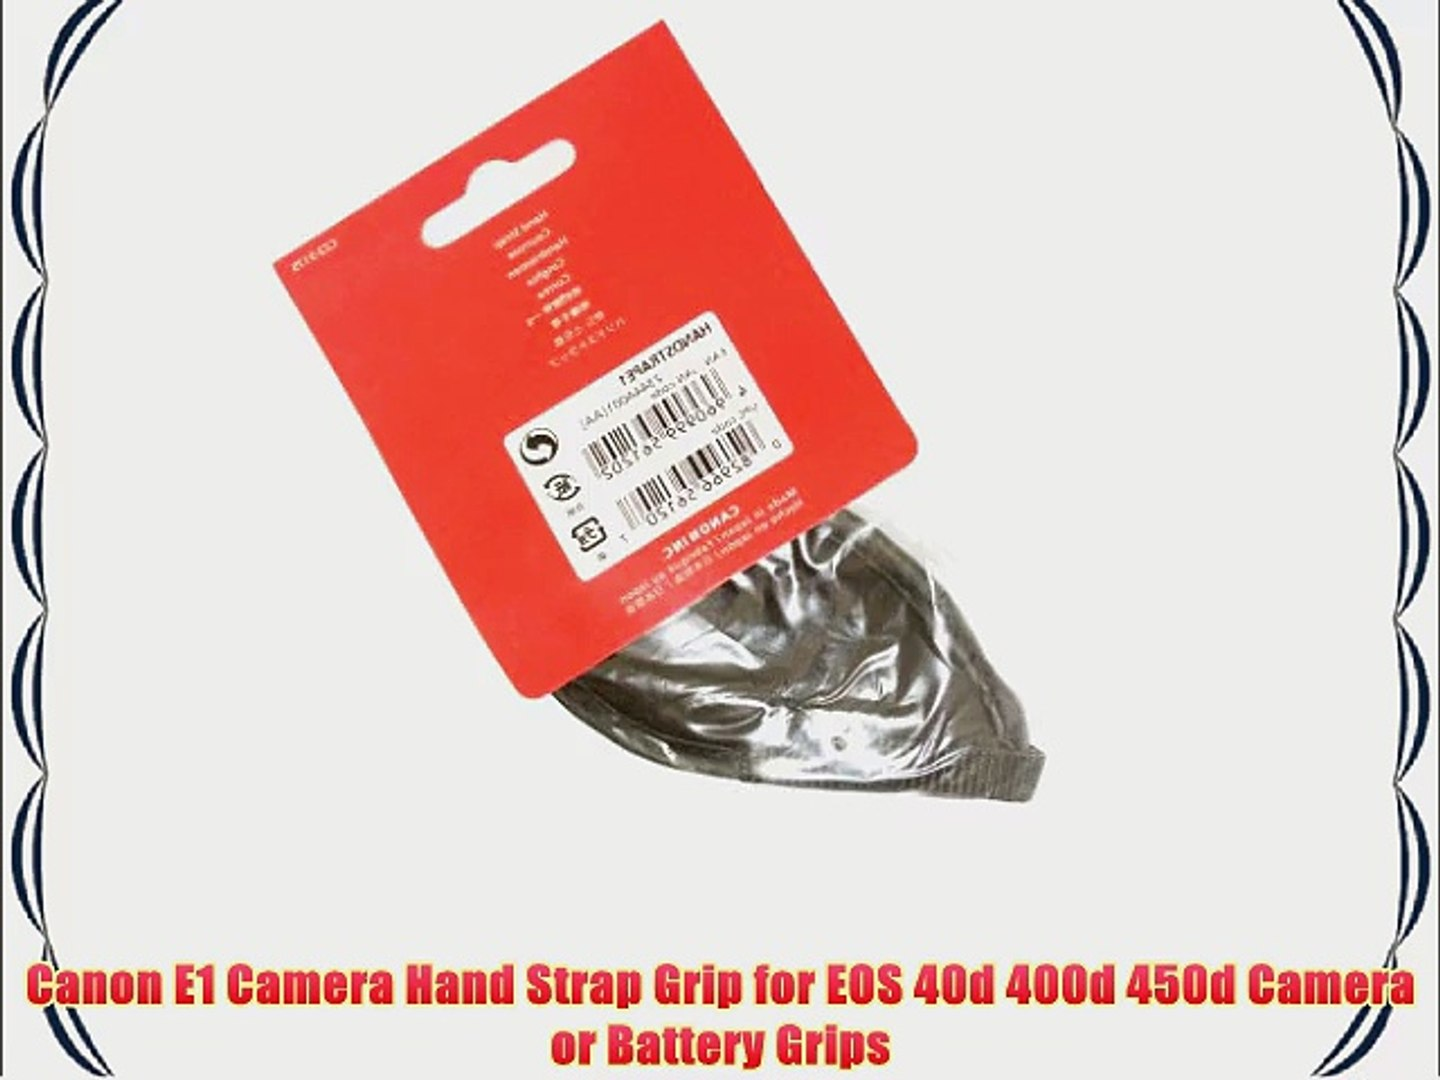 Canon E1 Camera Hand Strap Grip for EOS 40d 400d 450d Camera or Battery  Grips